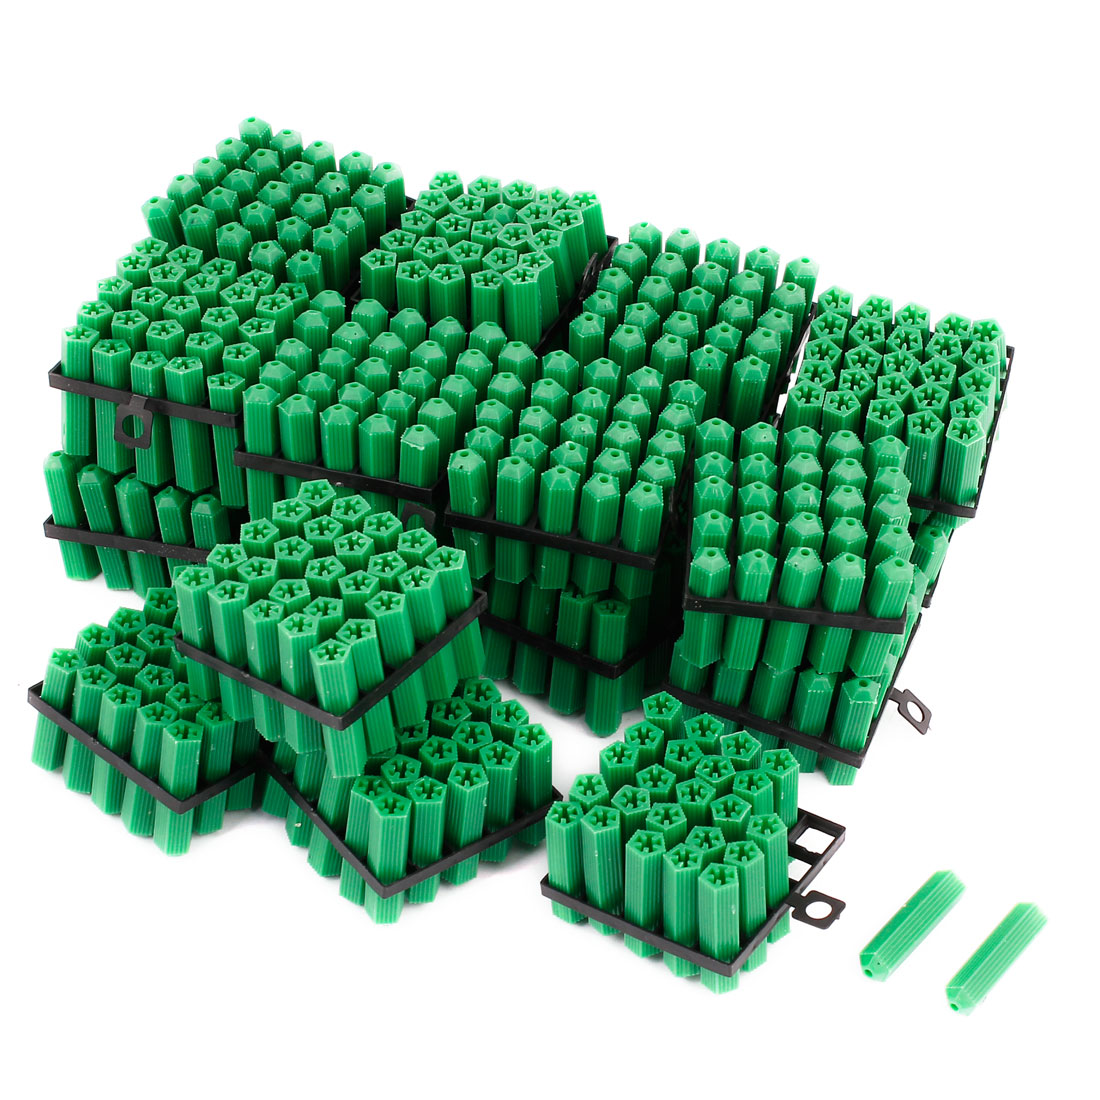 500 Pcs 6mm Dia Green Plastic Tube Inserts End Blanking Cap 28mm Long